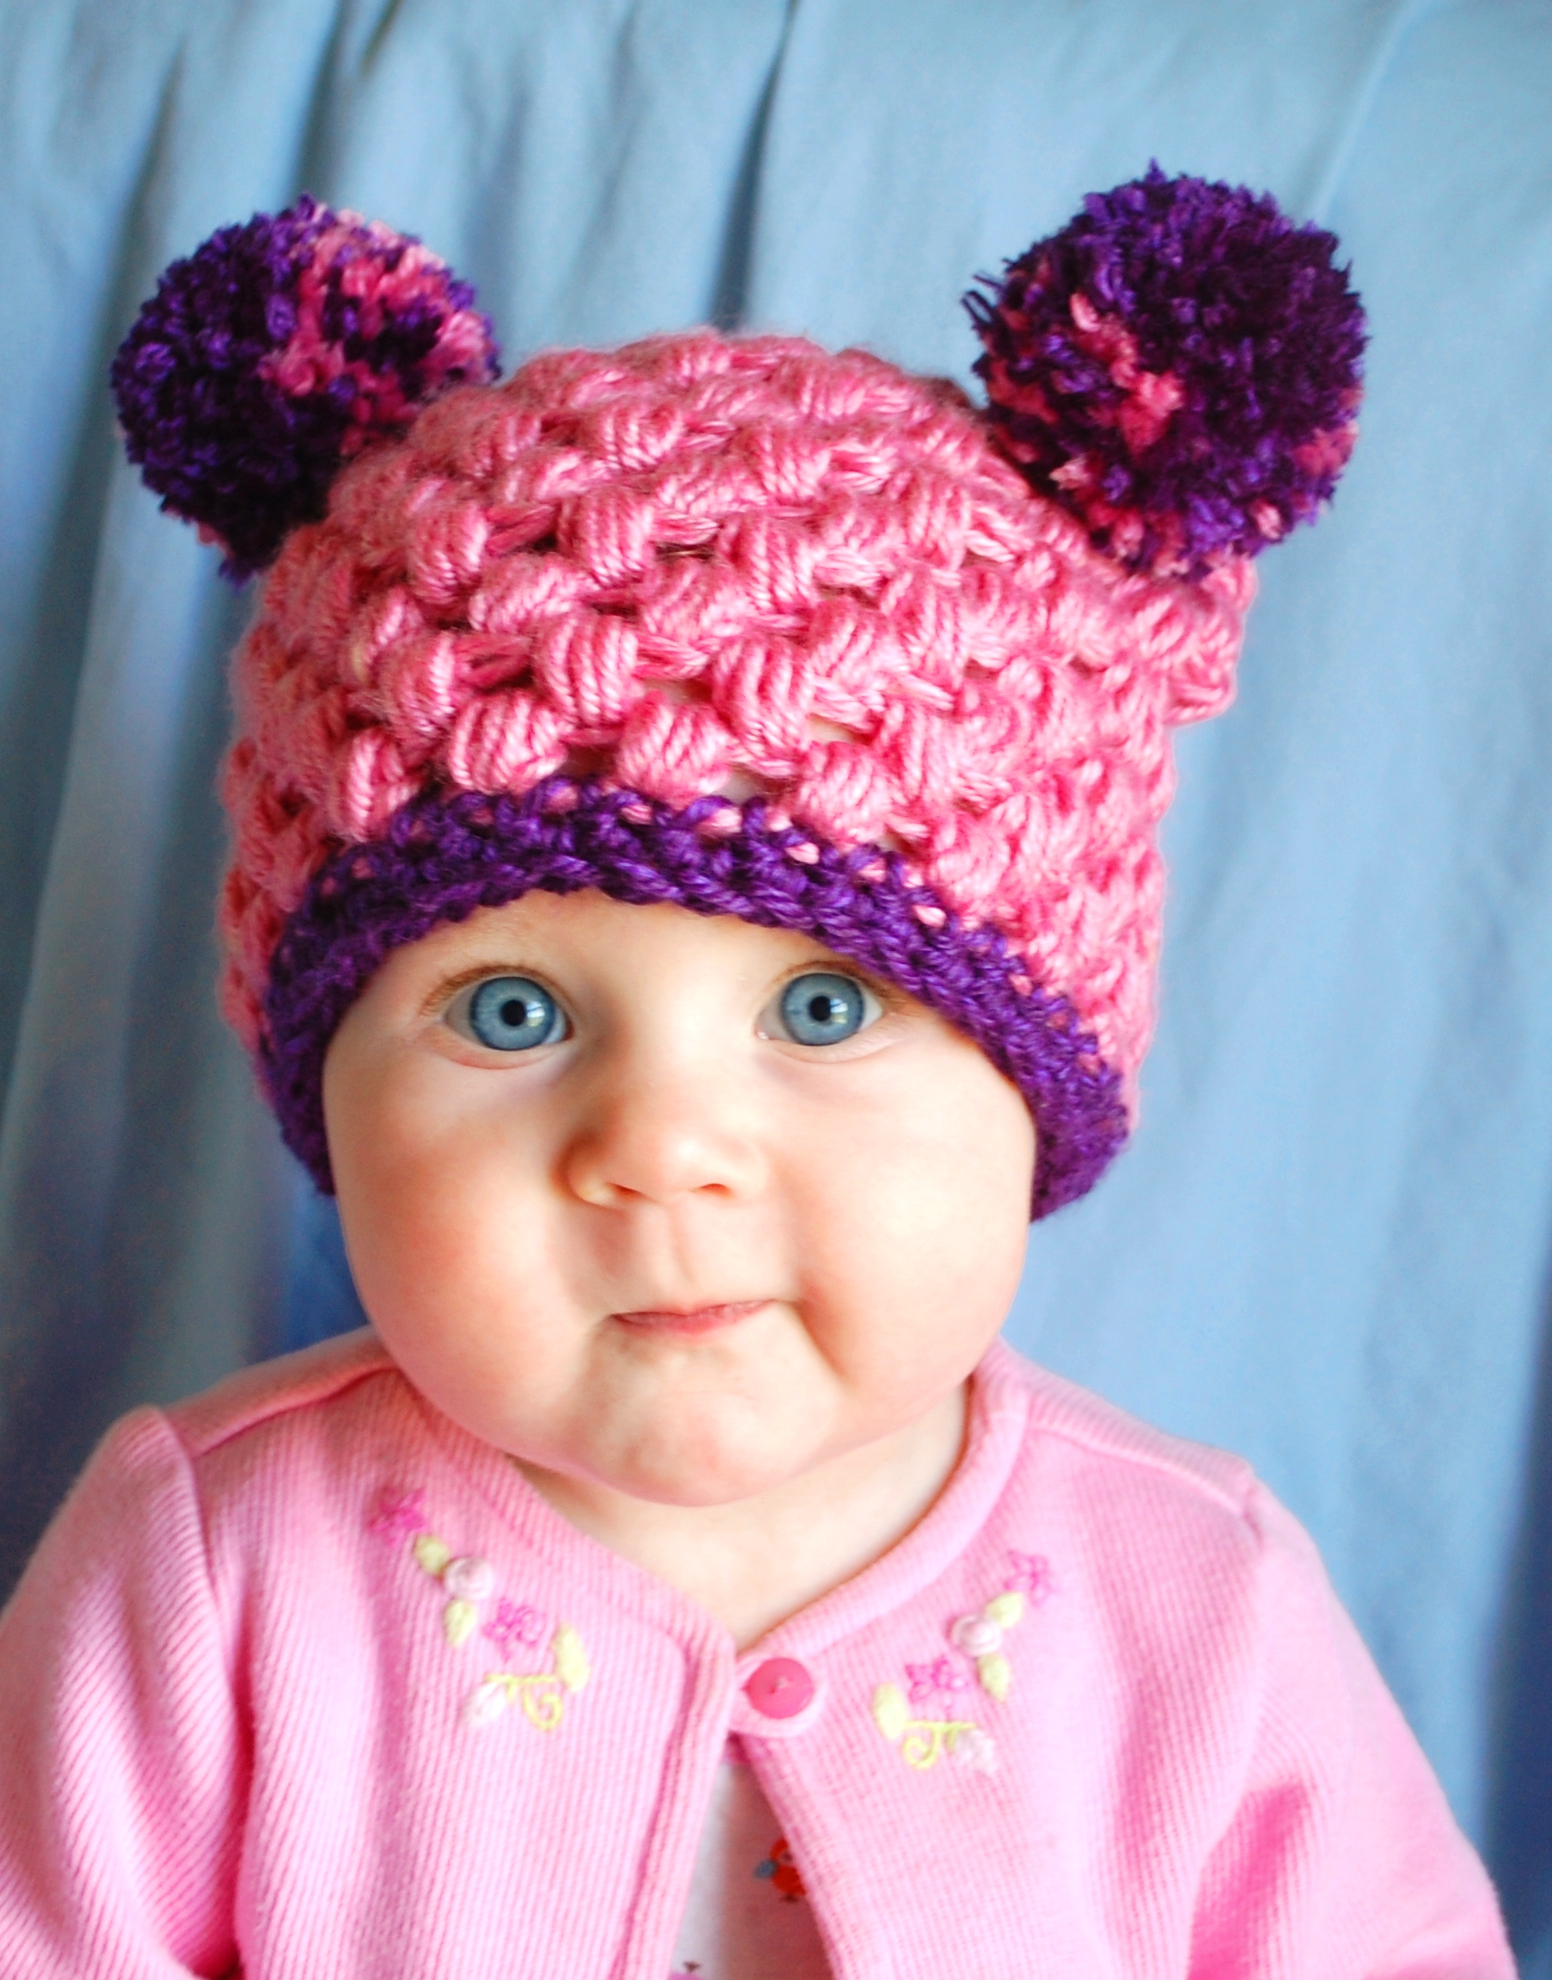 Pygmy Puff Pompom Hat by Melissa Mall